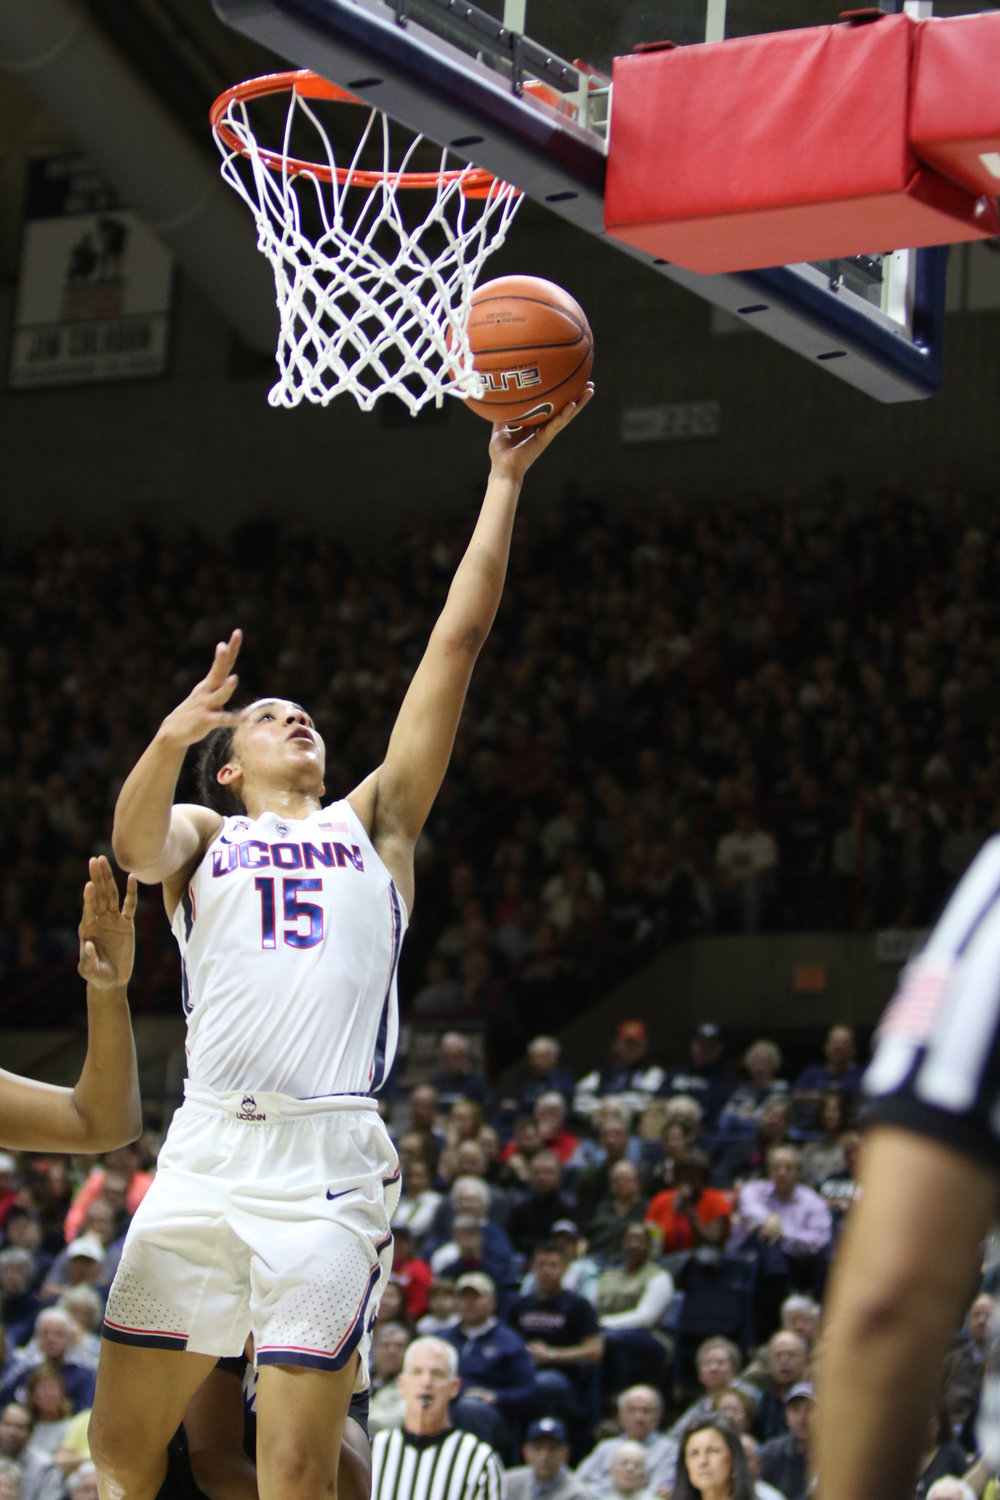 Gabby Williams completes a layup during the Huskies 91-48 victory over Memphis on Feb. 27, 2017 on Senior Day. (Jackson Haigis/The Daily Campus)